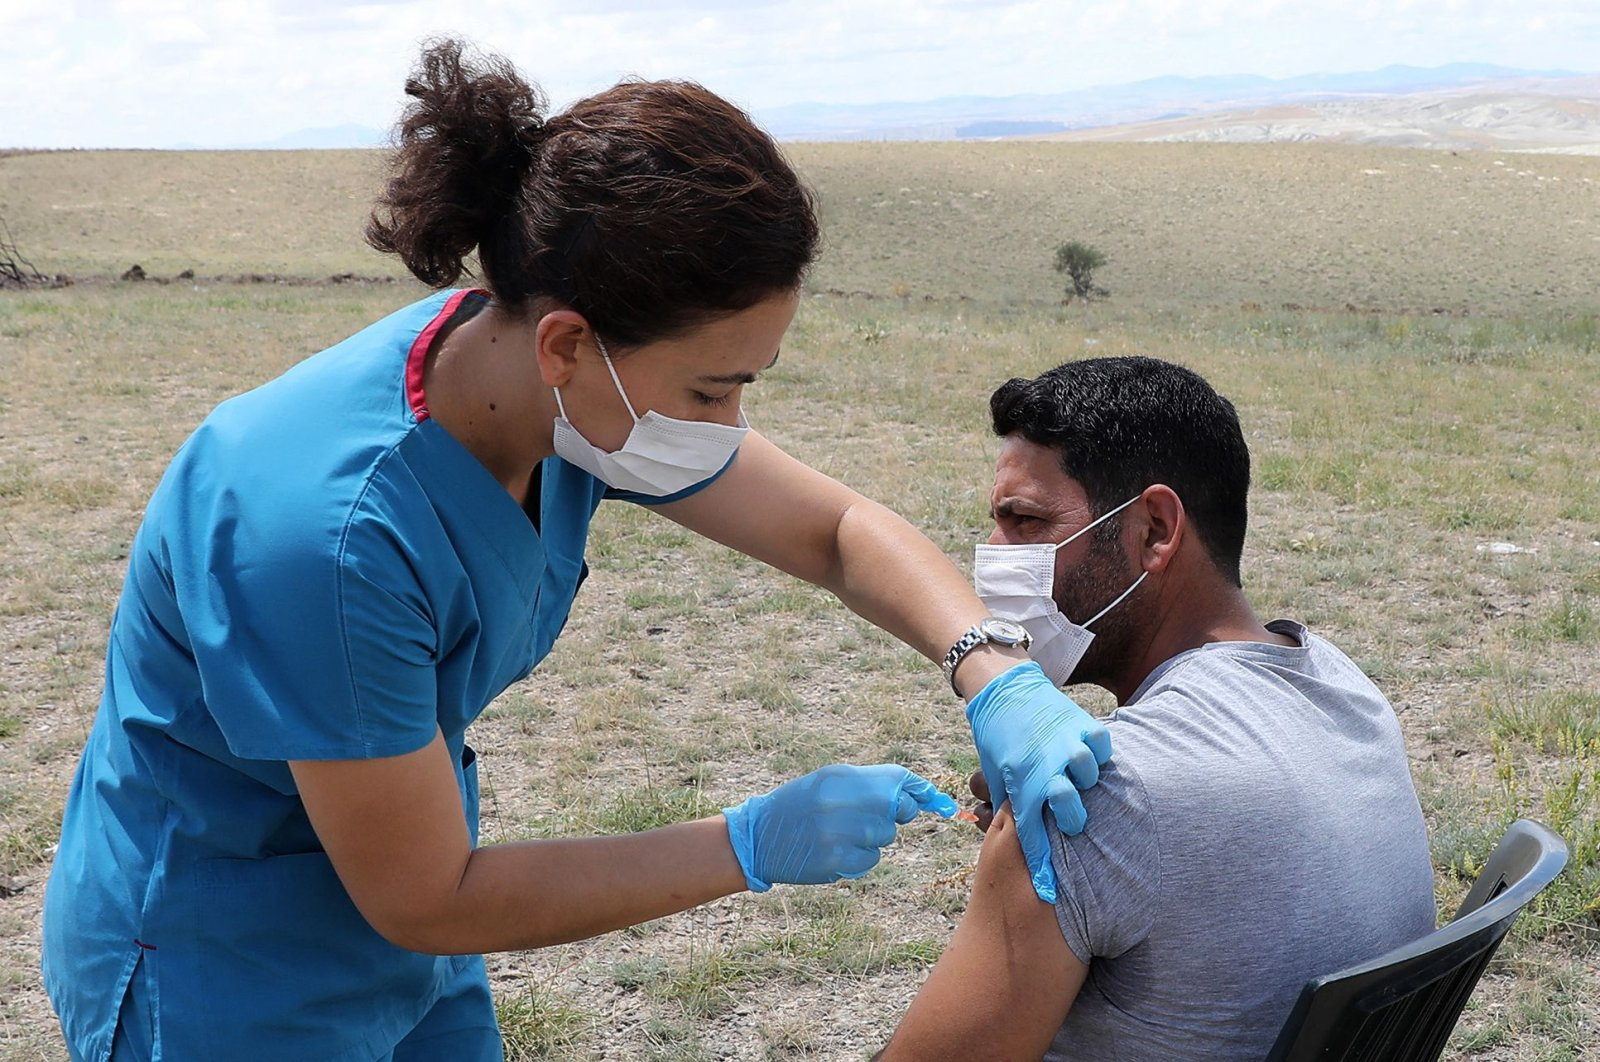 A health worker vaccinates a farmworker in the village of Oğuzlar, 100 kilometers away from the Turkish capital Ankara, July 8, 2021. (AFP Photo)